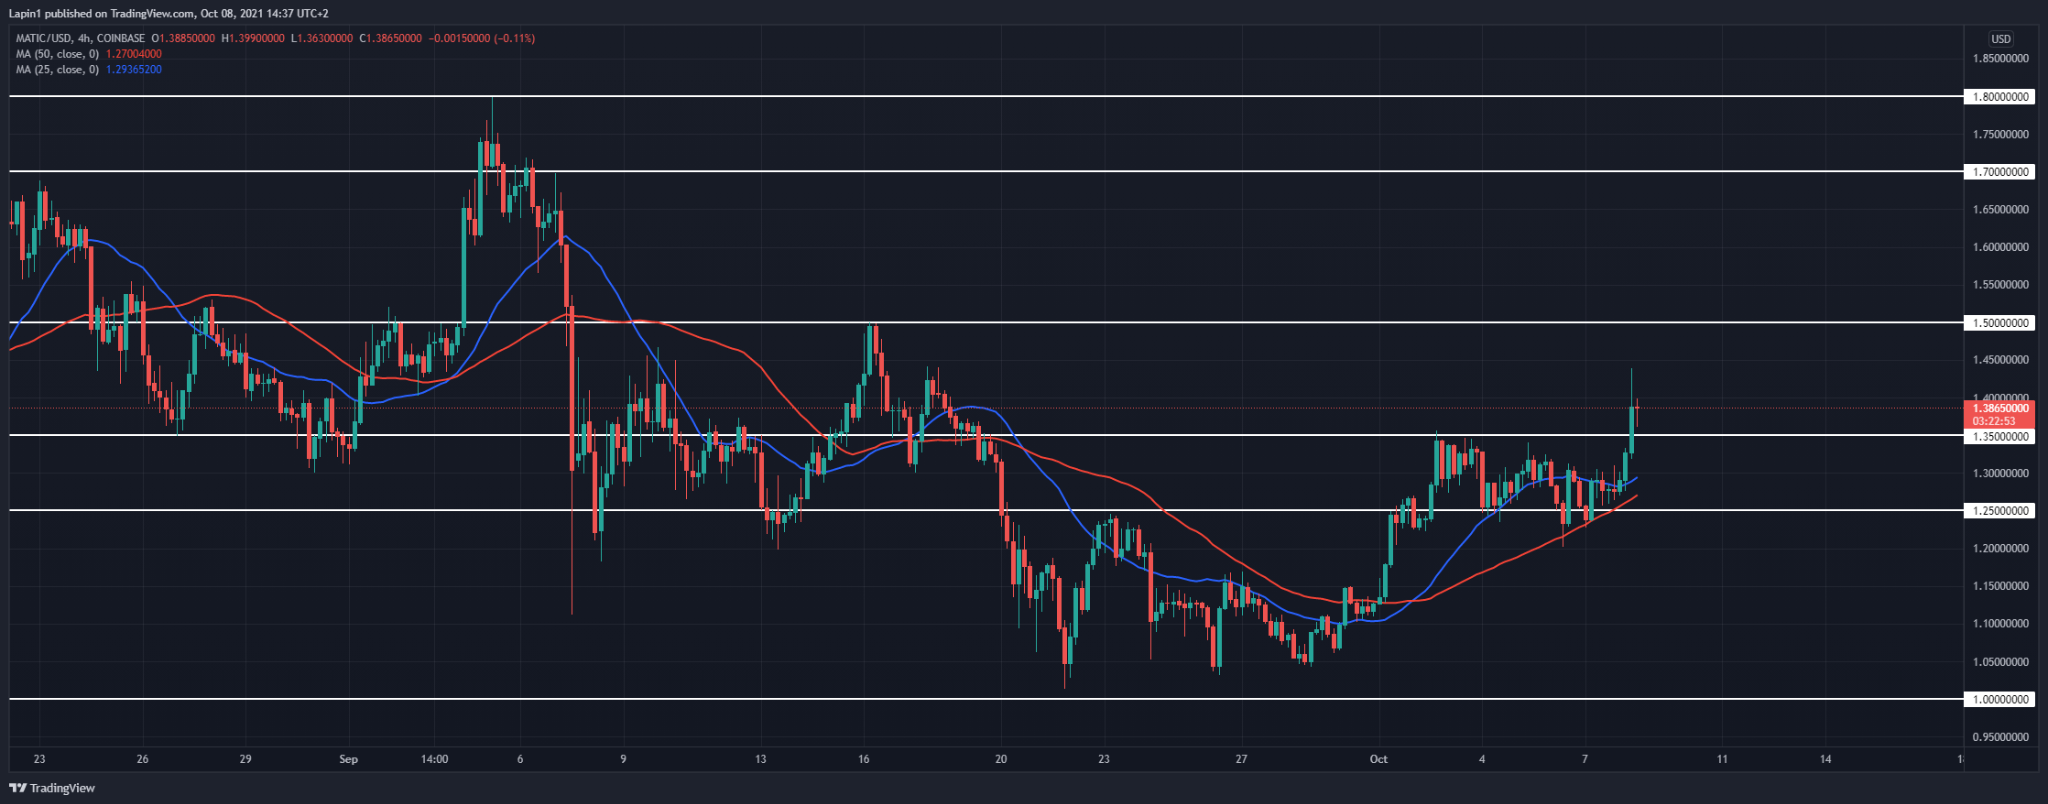 Polygon Price Analysis: MATIC spikes above $1.35 previous high, reversal to follow?